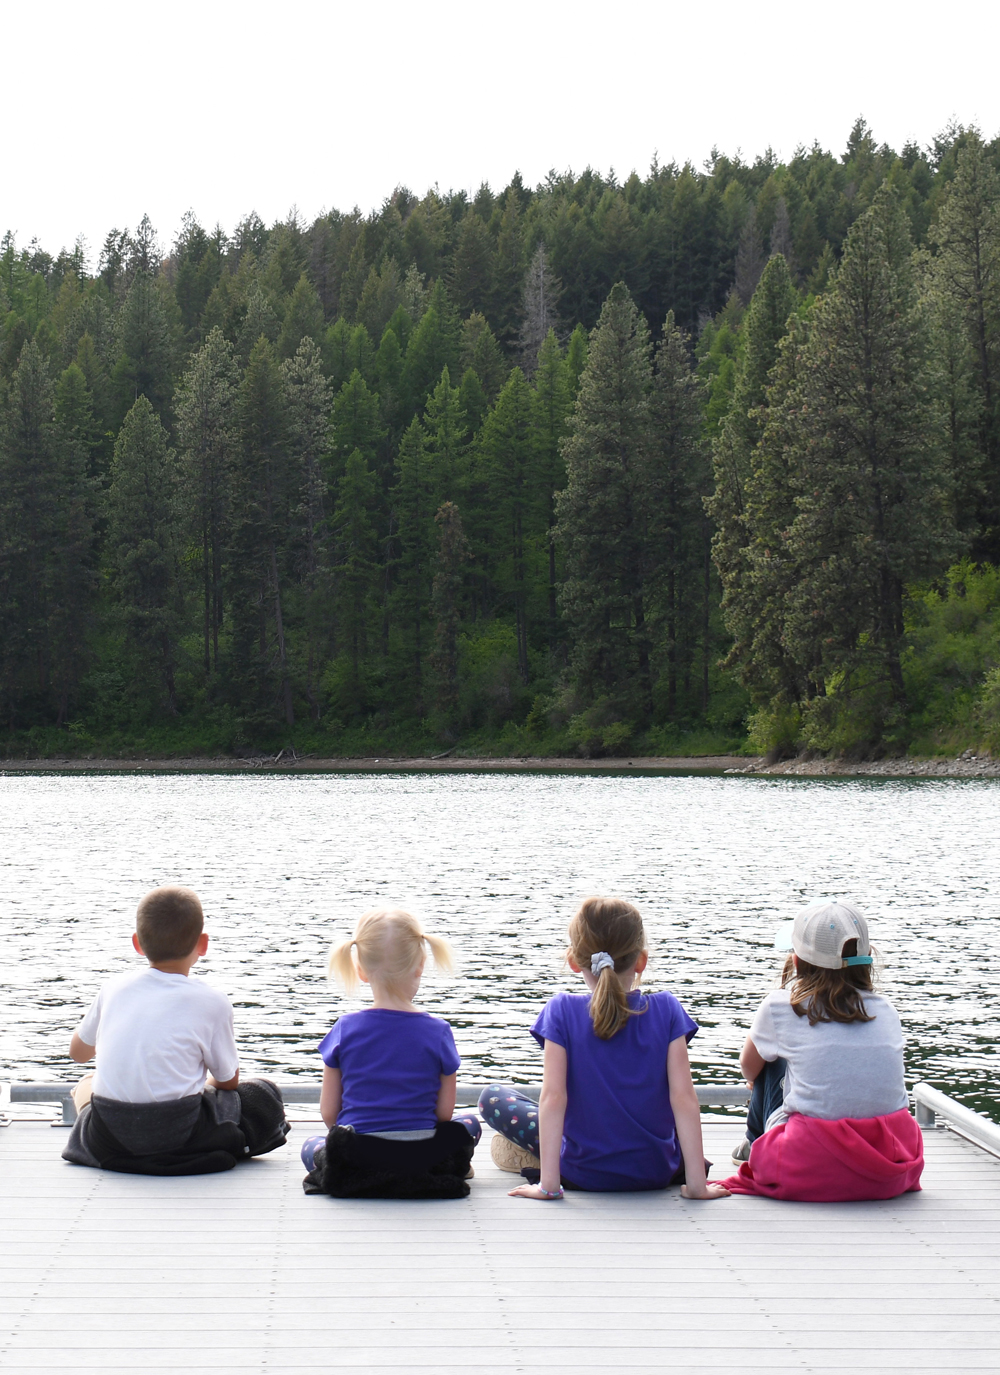 Camping Activities at Farragut State Park near Coeur d'Alene, Idaho